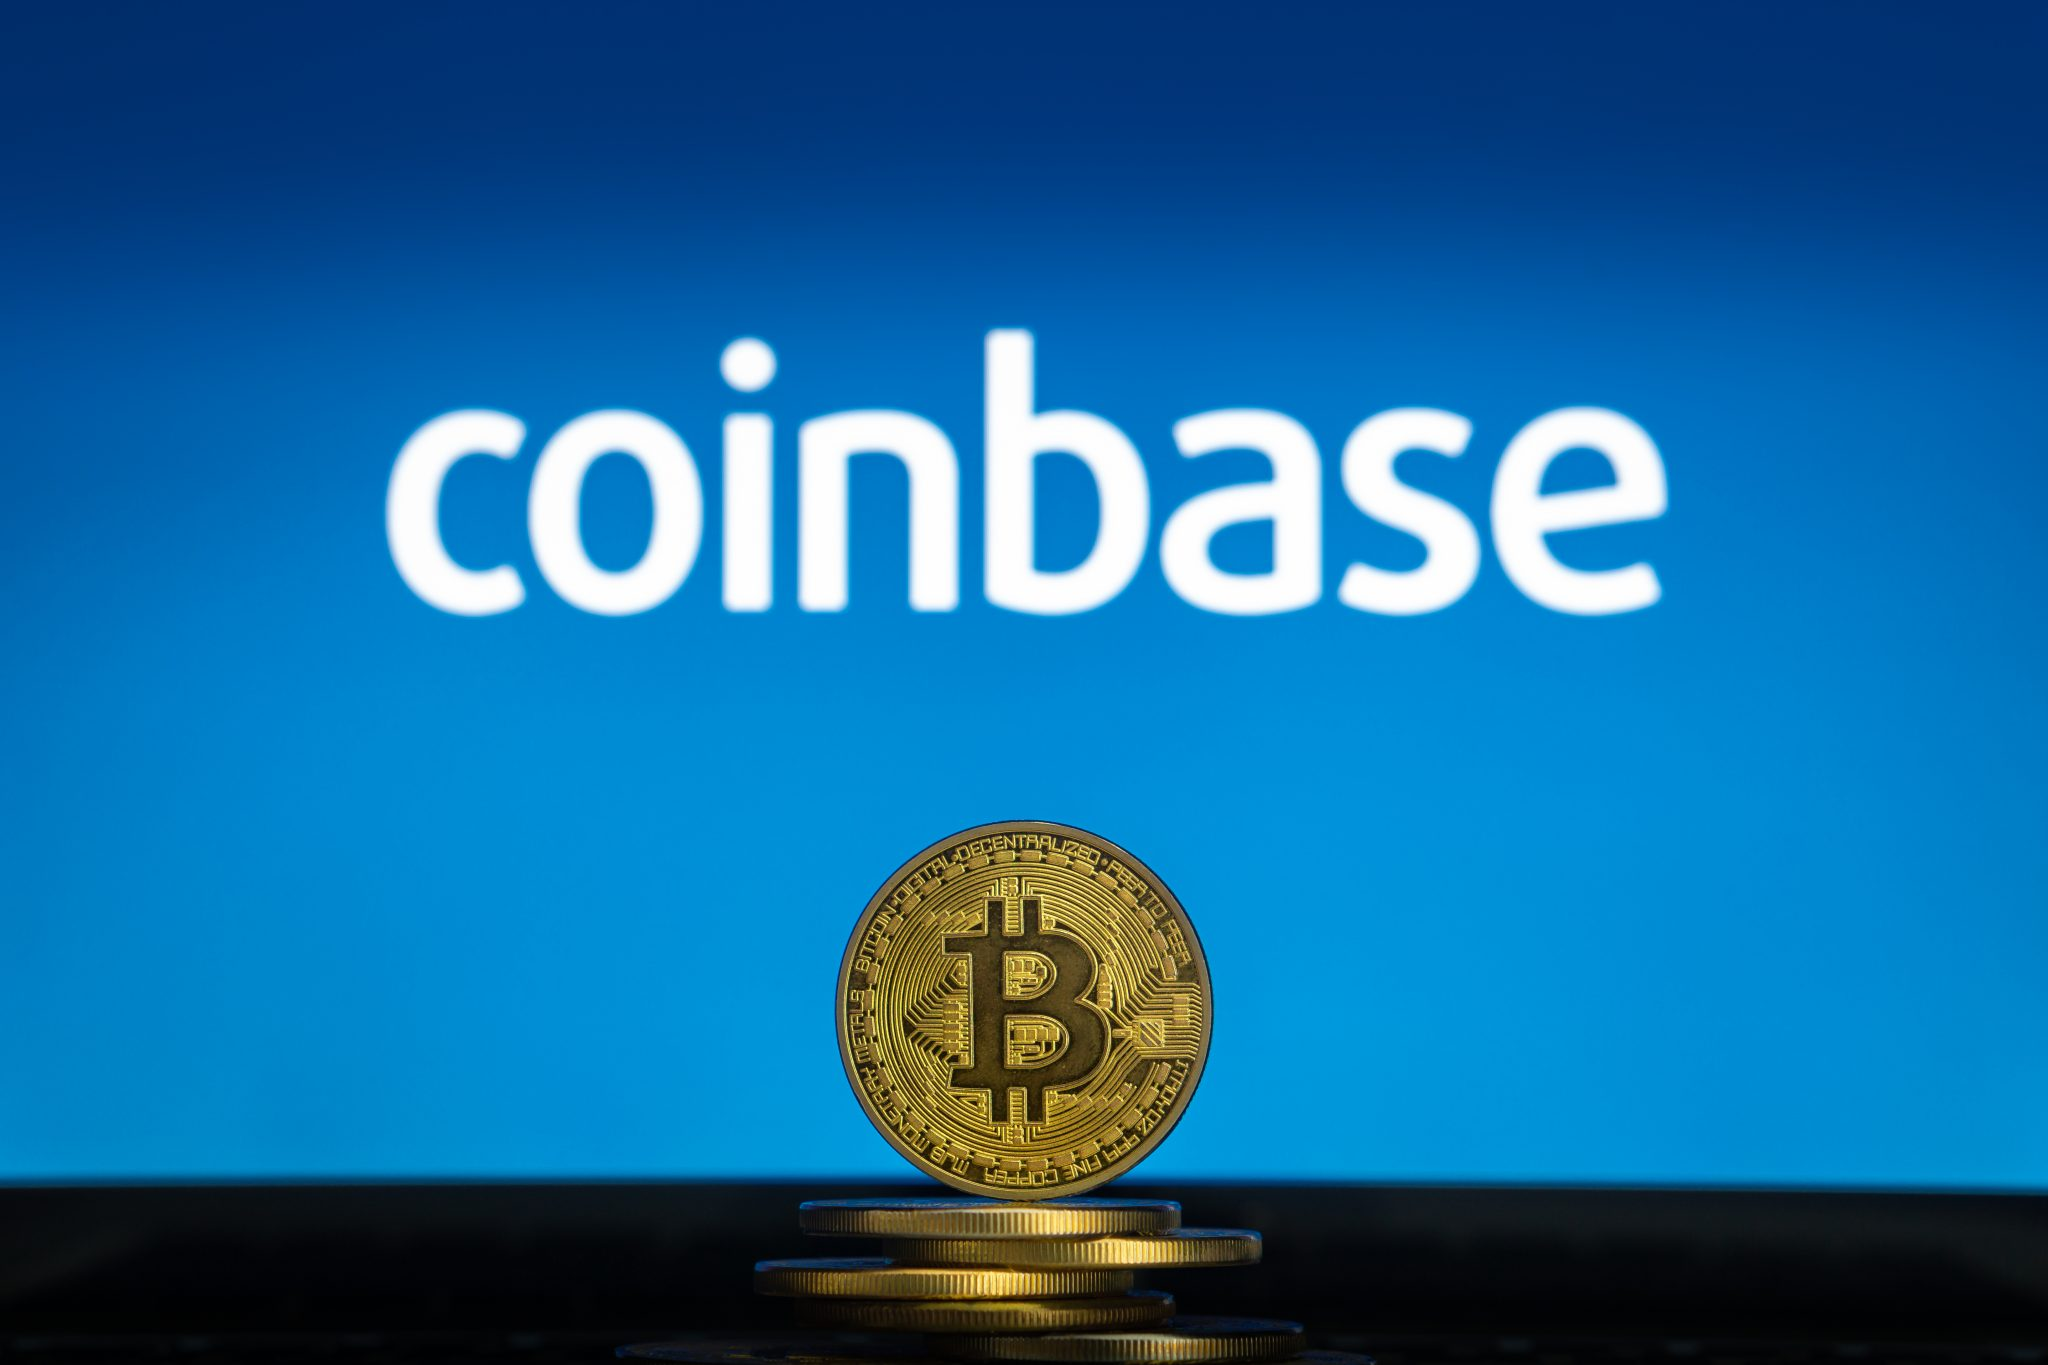 Coinbase logo on a computer screen with a stack of Bitcoin cryptocurency coins.